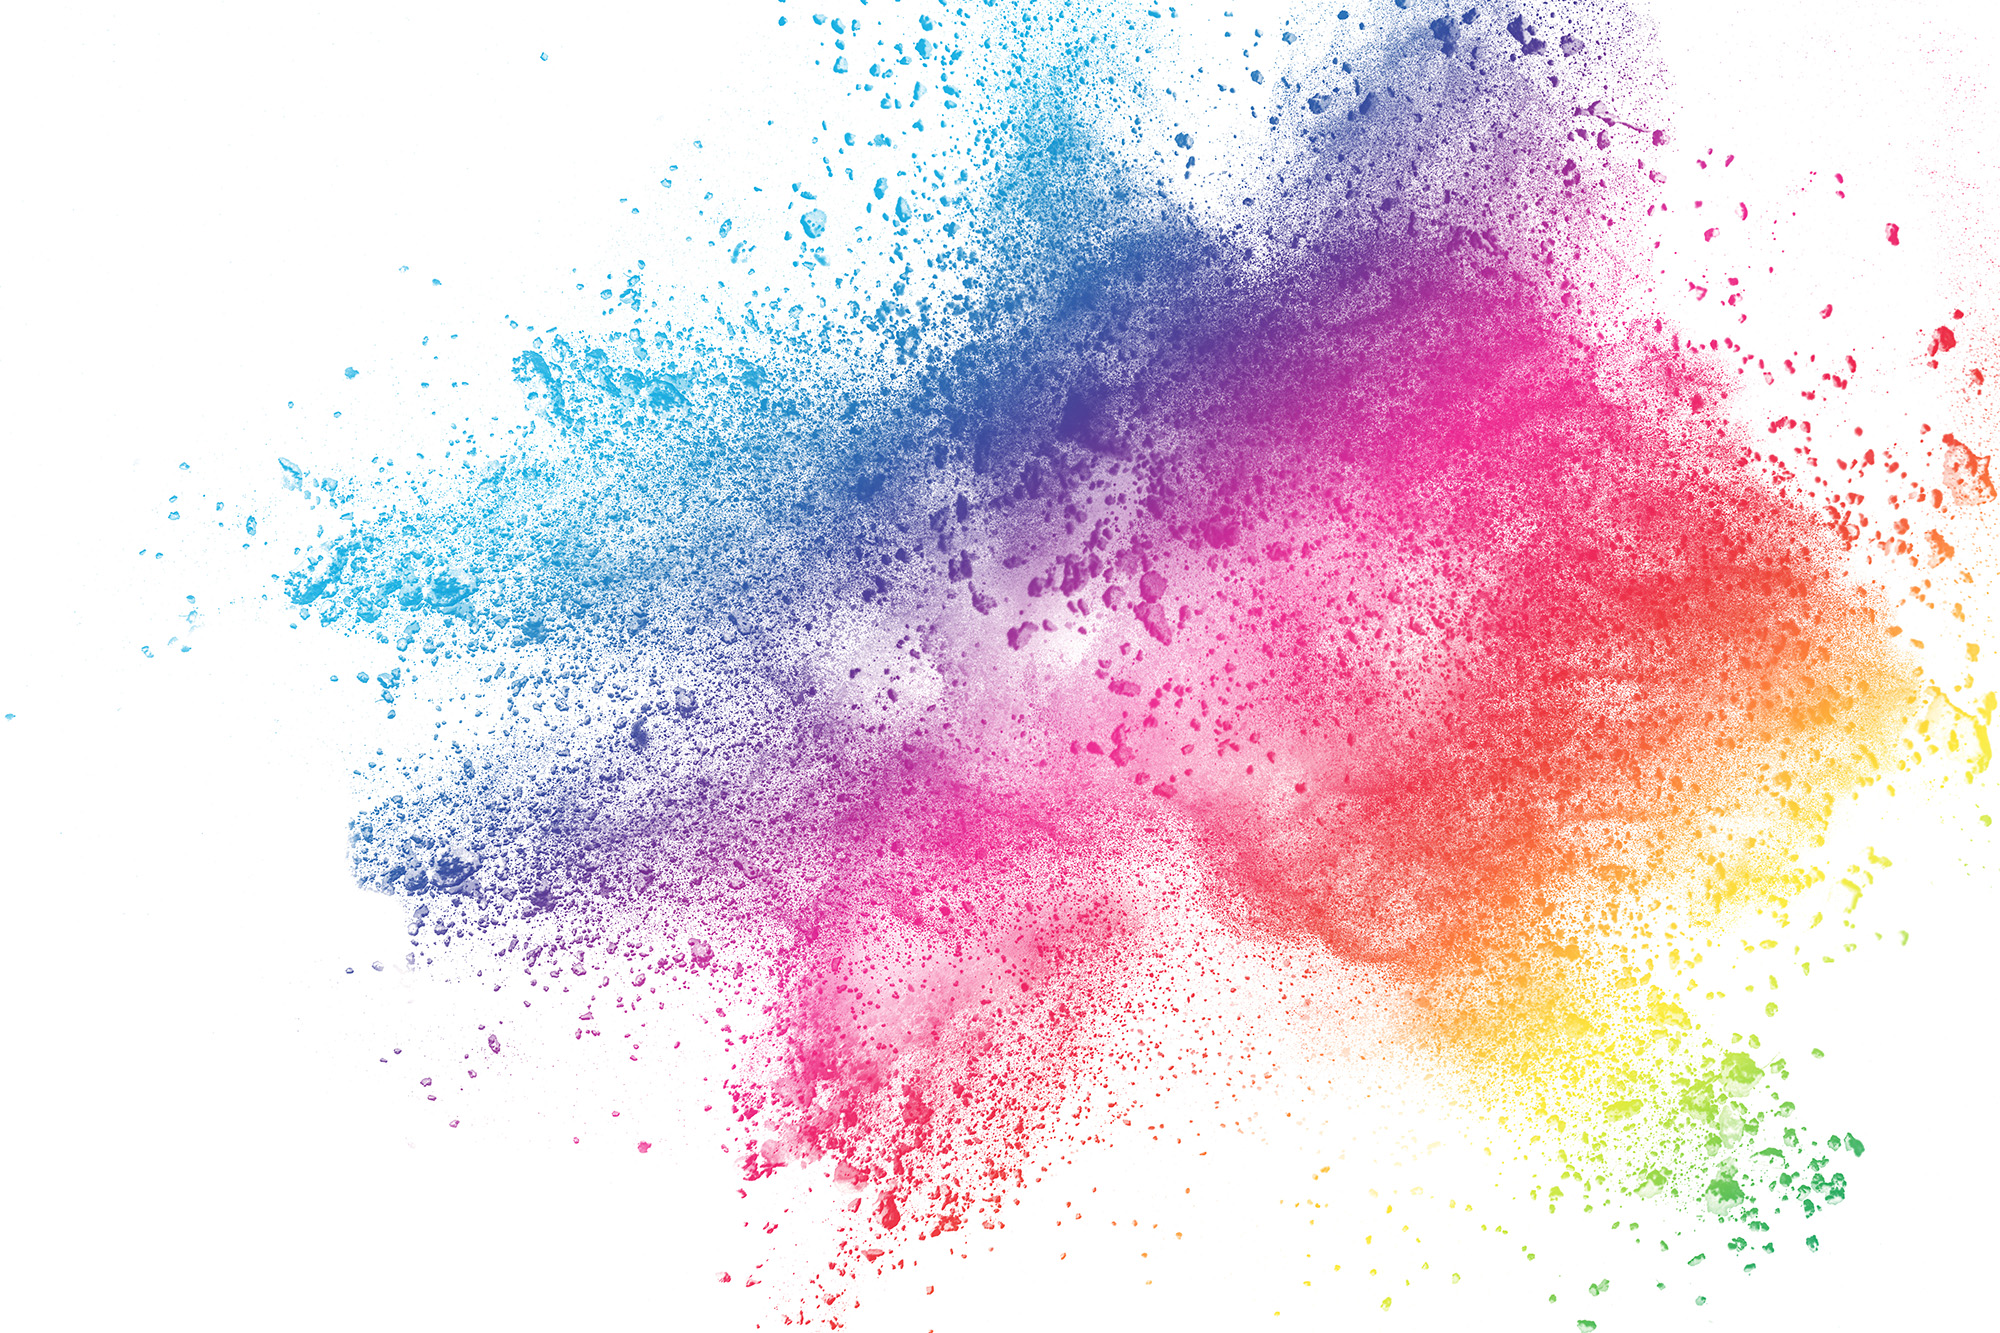 Color Psychology: How to Use Color in Marketing